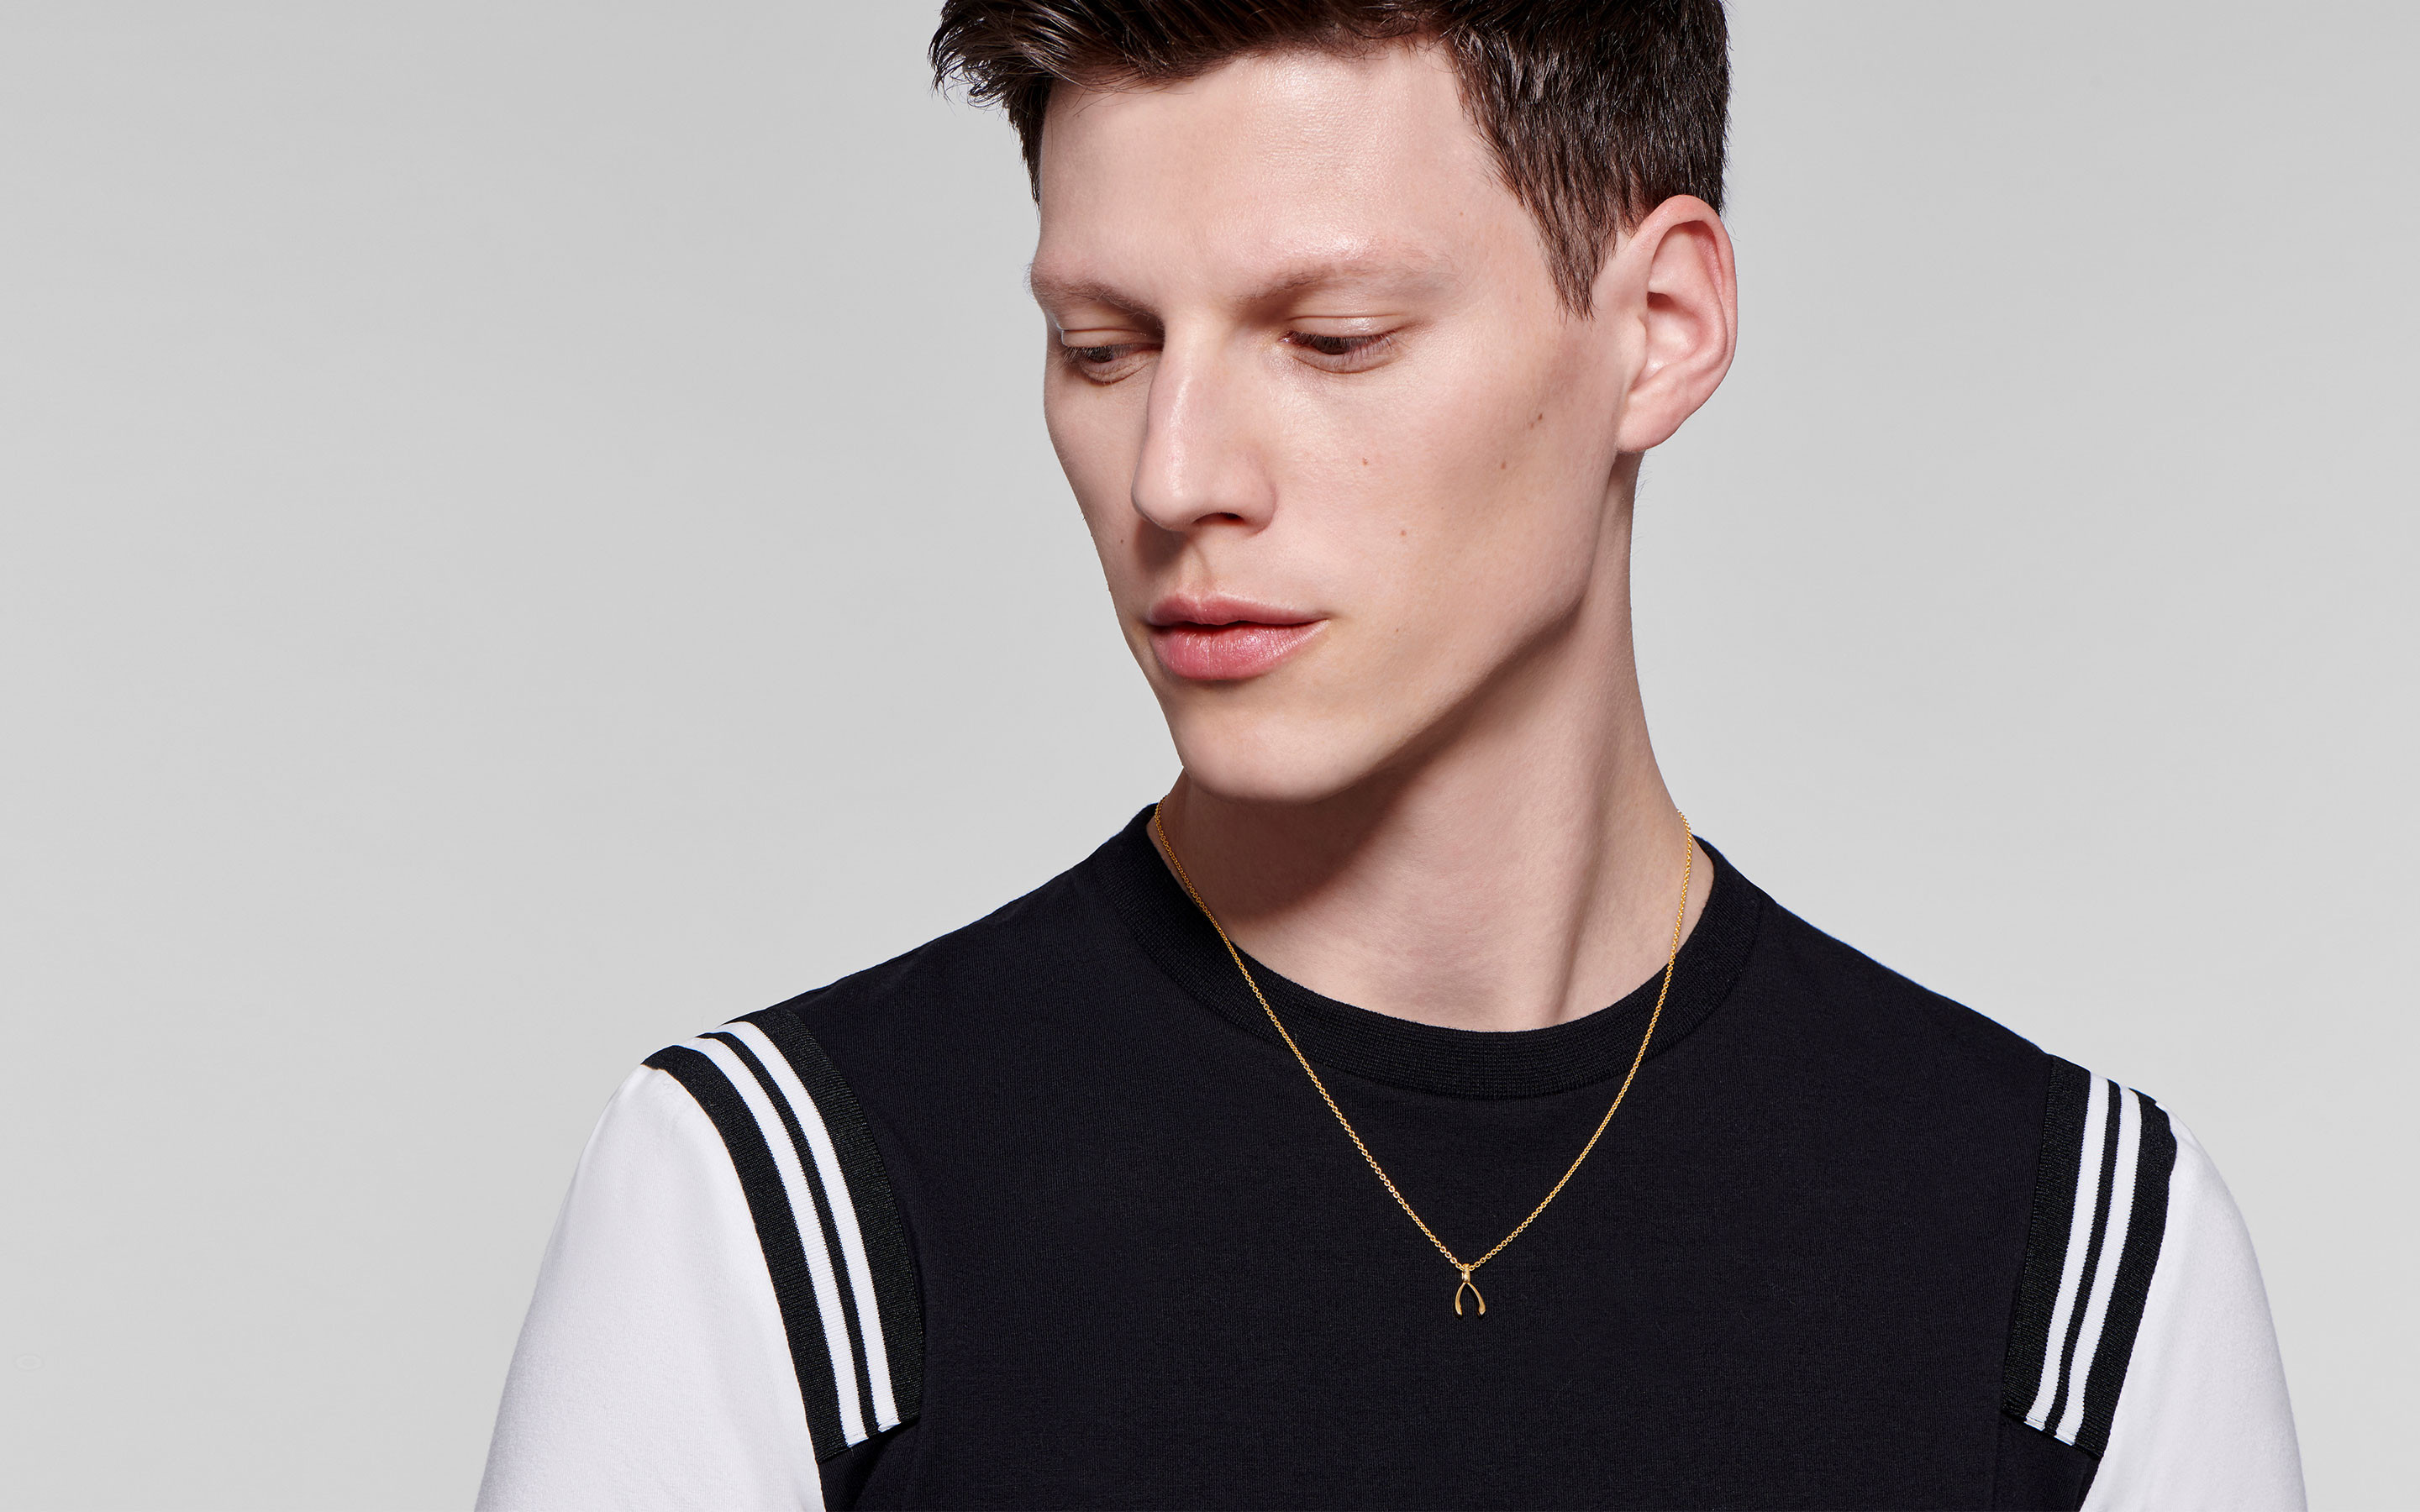 22 karat gold necklace with wishbone pendant showcased by brooding male model